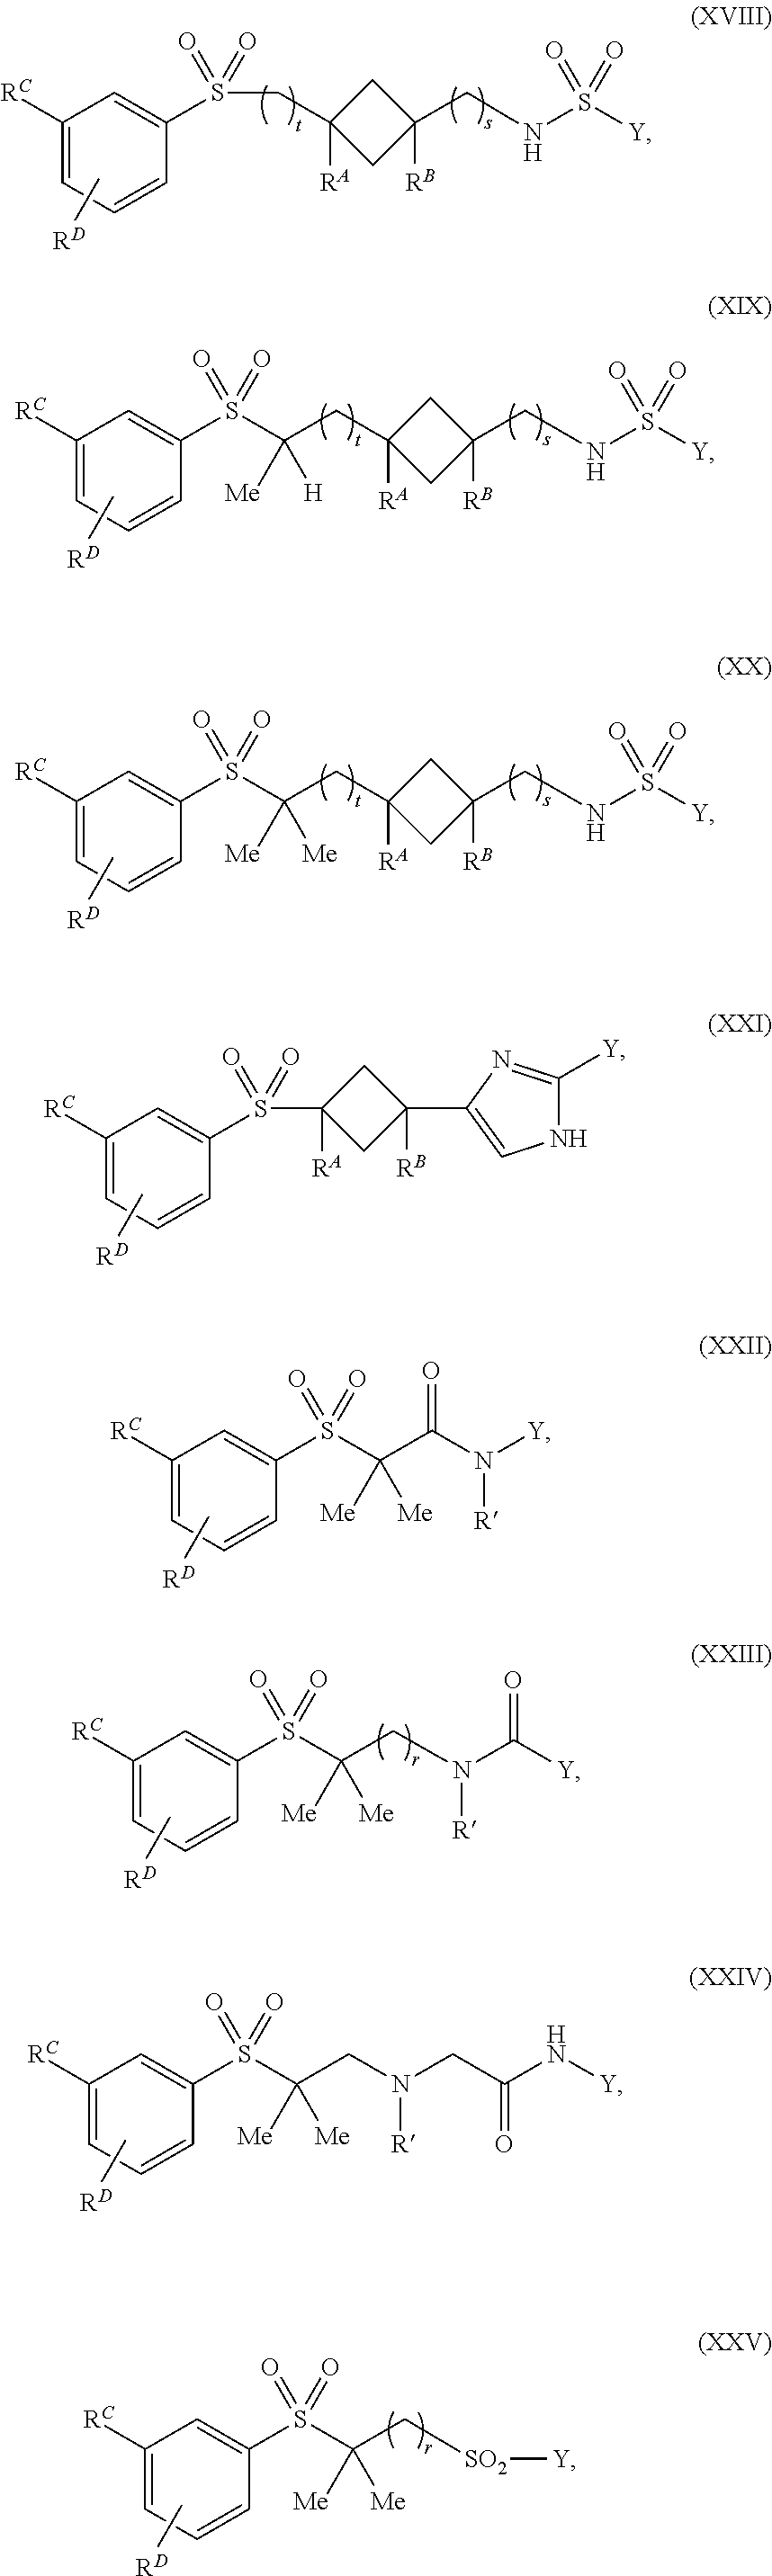 Us20120245137a1 Aryl Sulphone Derivatives As Calcium Channel Seal Skeleton Labeled See Diagram 9230 Figure 20120927 C00027